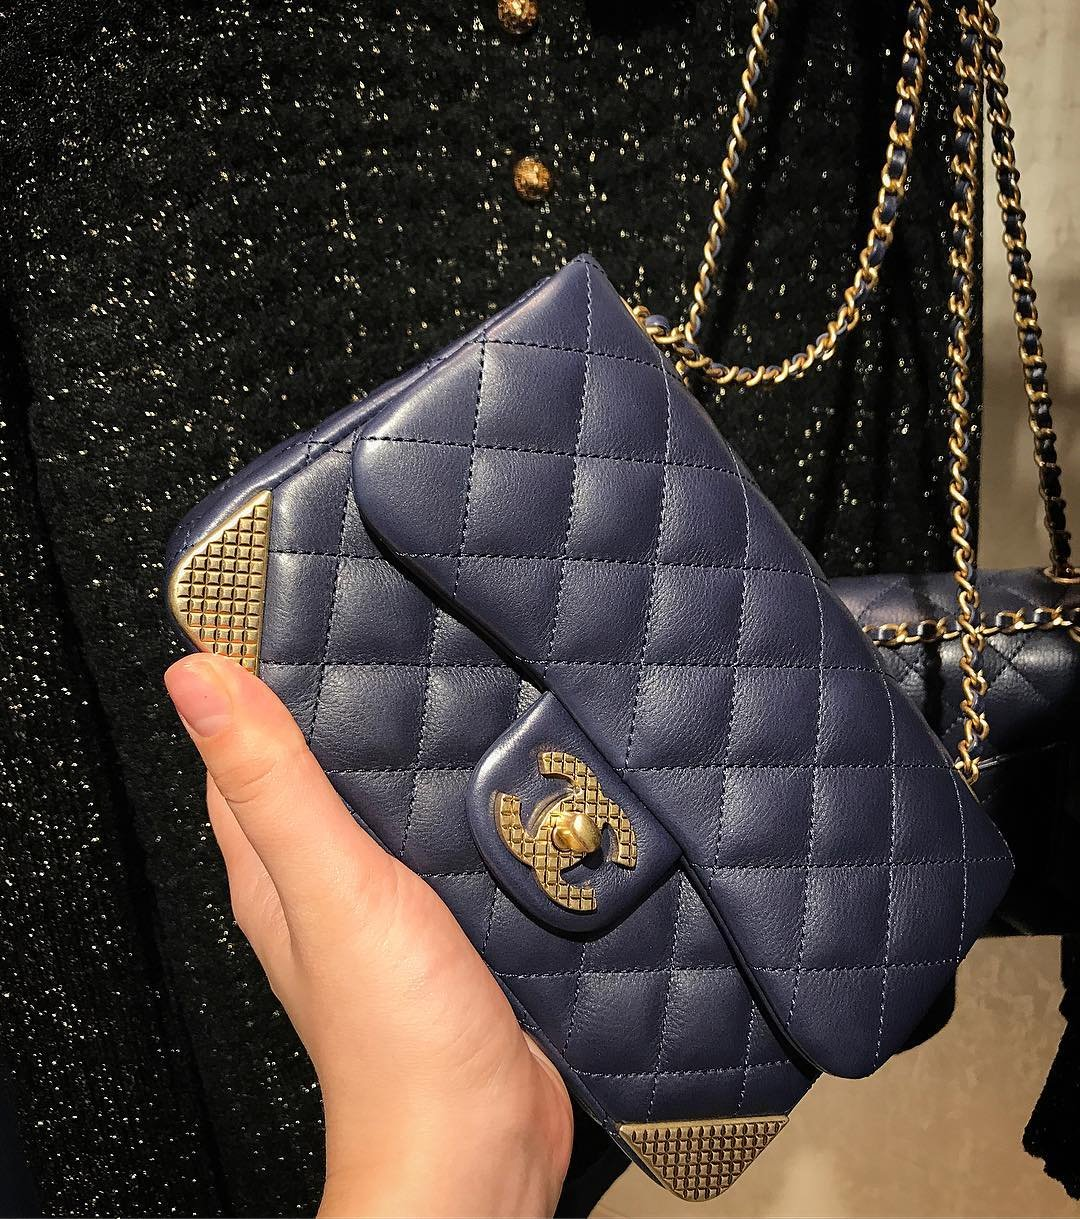 Chanel-Studded-Corners-Flap-Bag-3